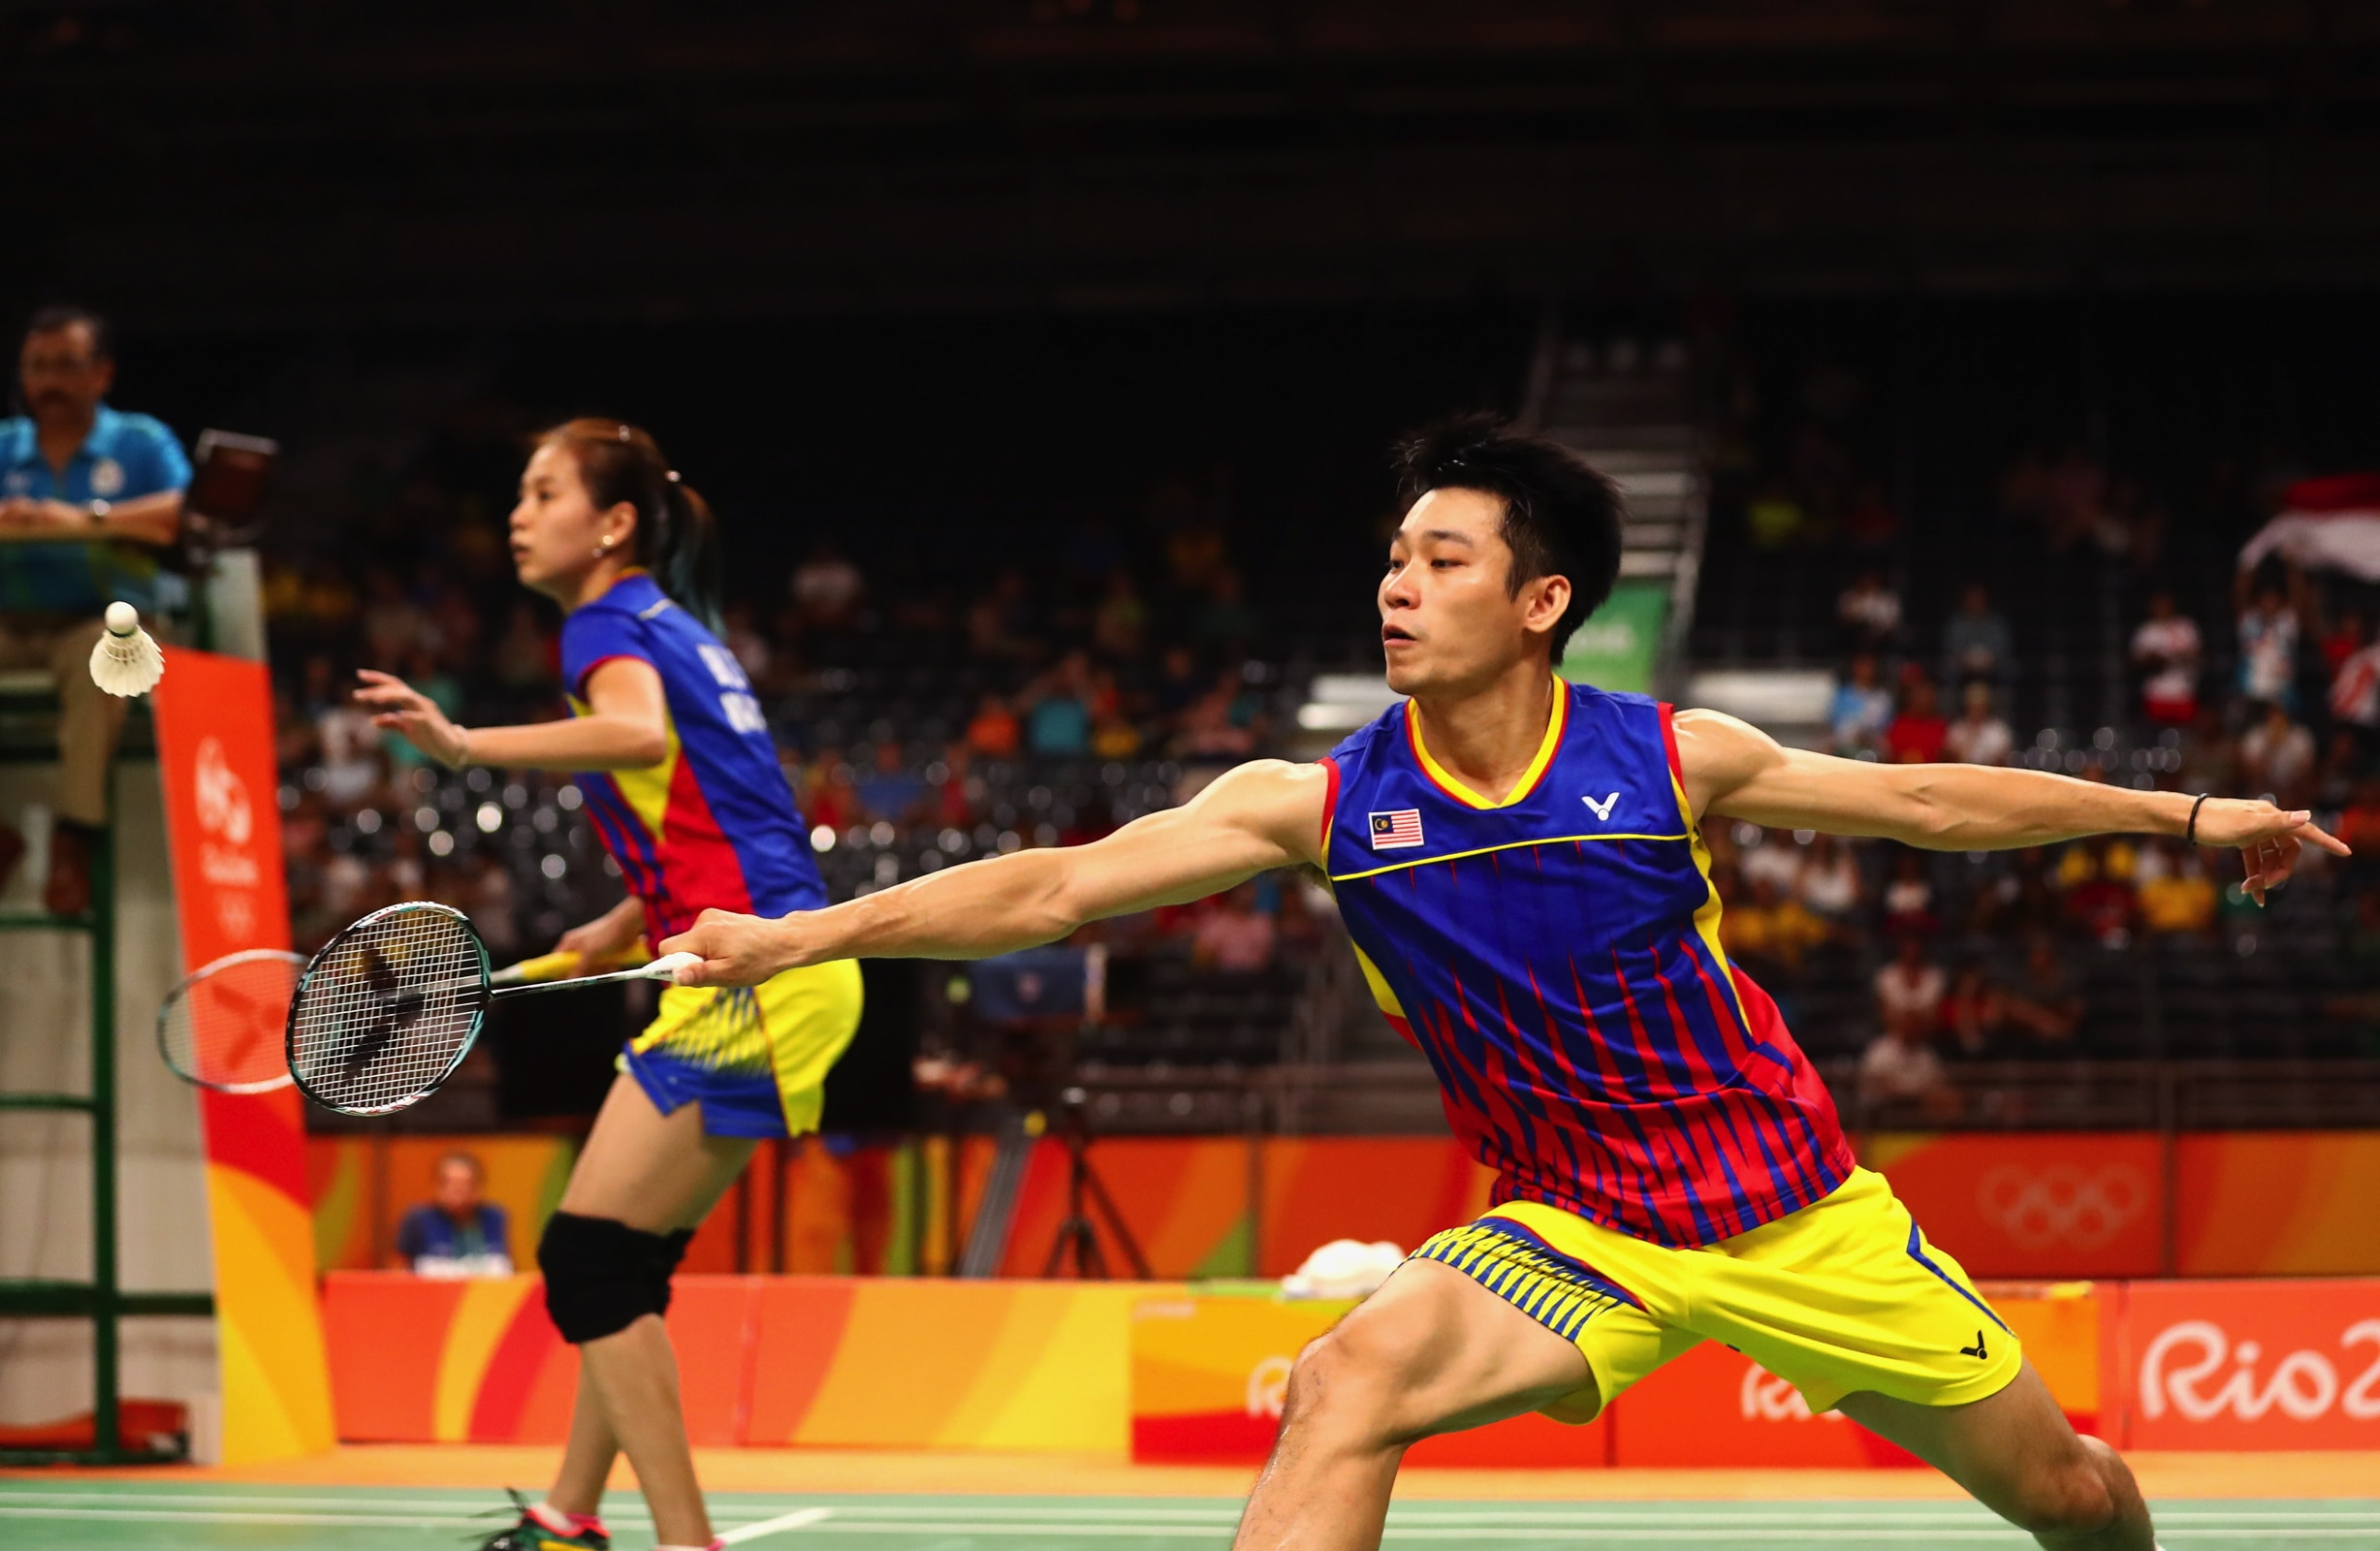 Badminton - Mixed Doubles